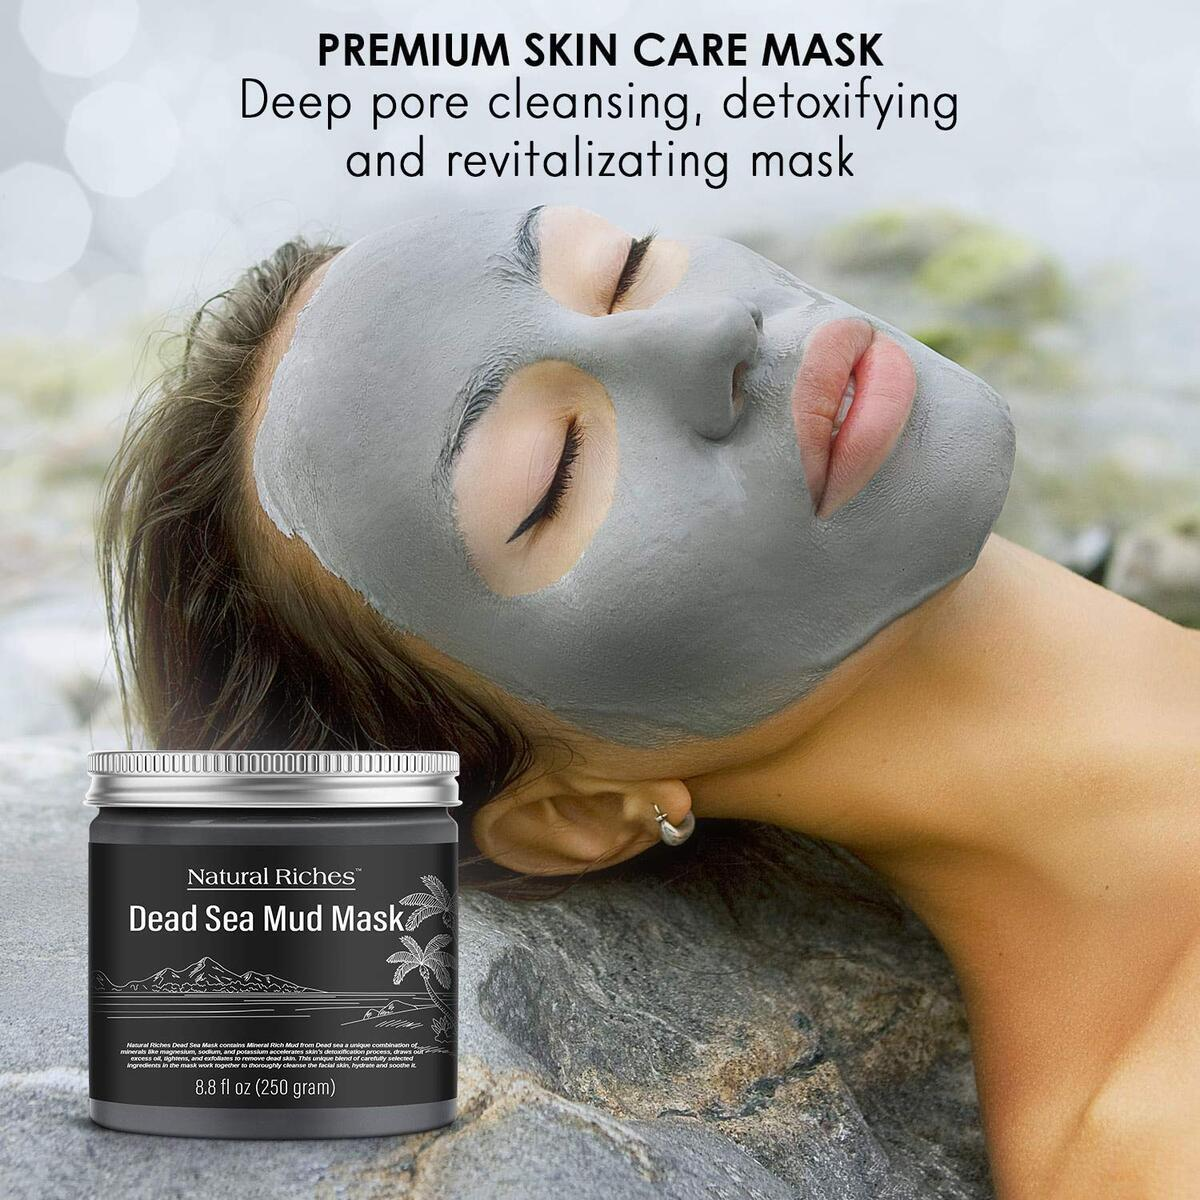 Dead Sea Mud Mask for Face and Skin Care, Best Facial Cleansing Clay for Oily Skin Blackhead, Whitehead, Acne and Pores for men & women